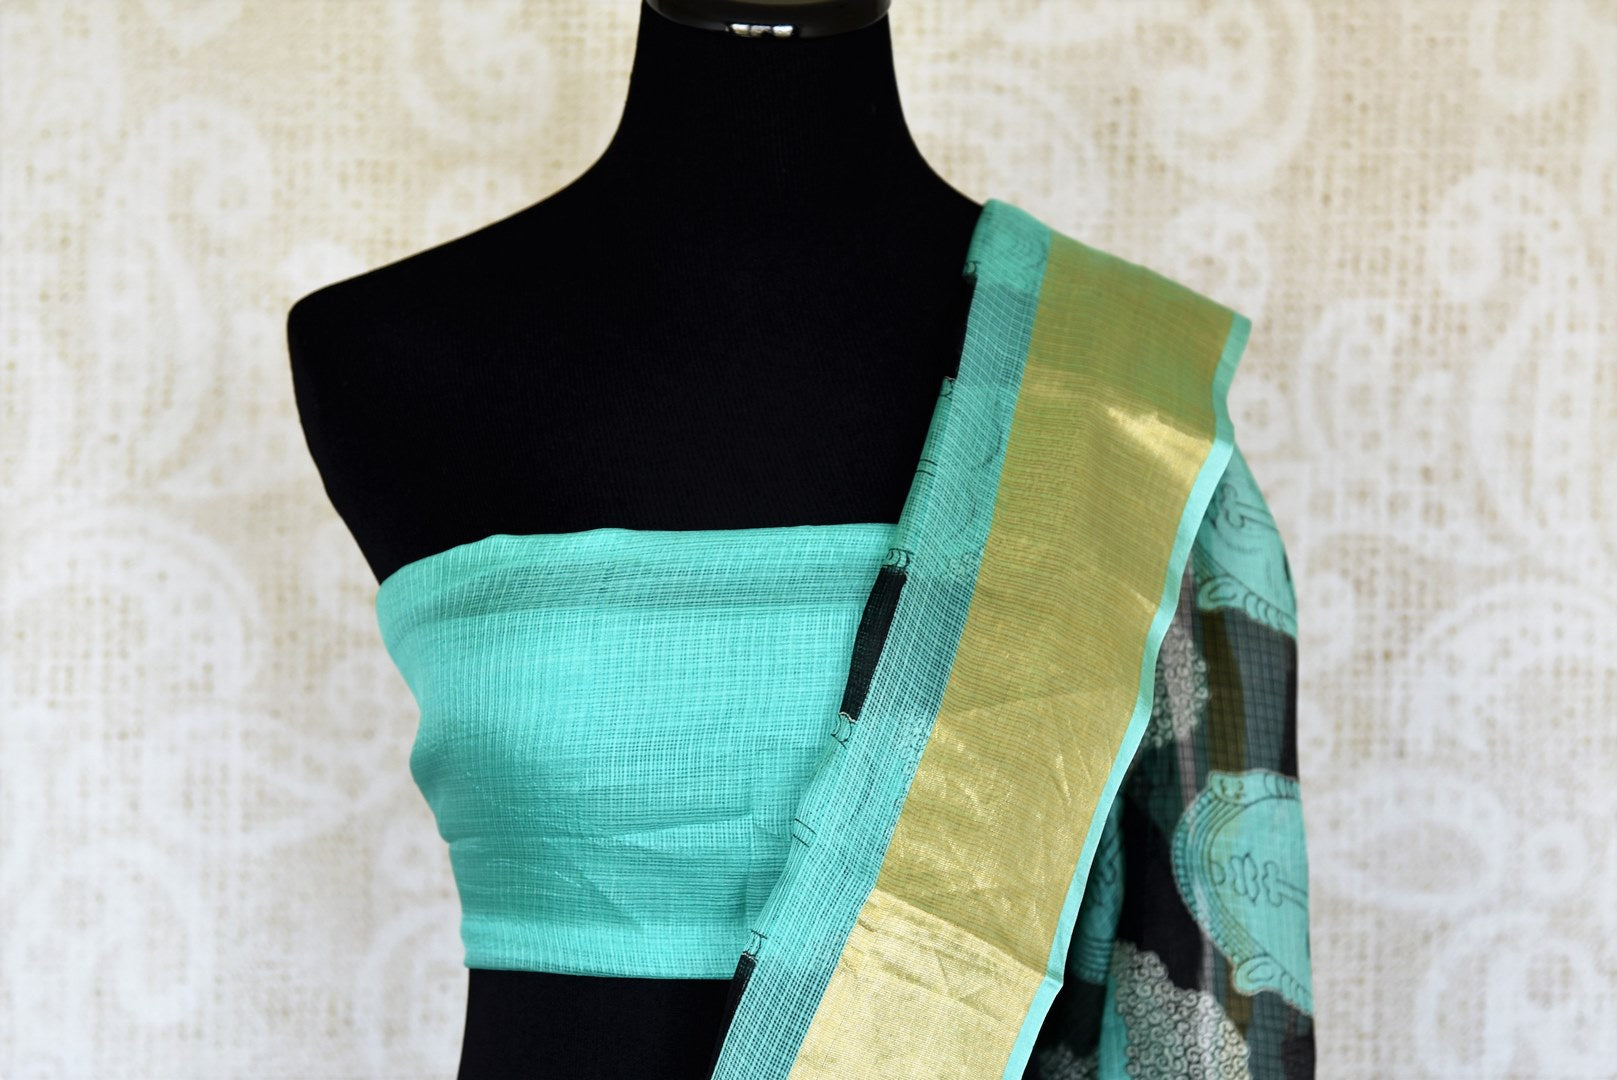 Slay effortlessly in this elegant blue and black zari kota tribal hand printed sari. The gorgeous Lord Buddha's portrait hand printed all over the saree gives quite an artistic expression while the fancy zari border levels up the beauty. Shop silk sarees, ikkat saris online or visit Pure Elegance store in USA. -blouse pallu